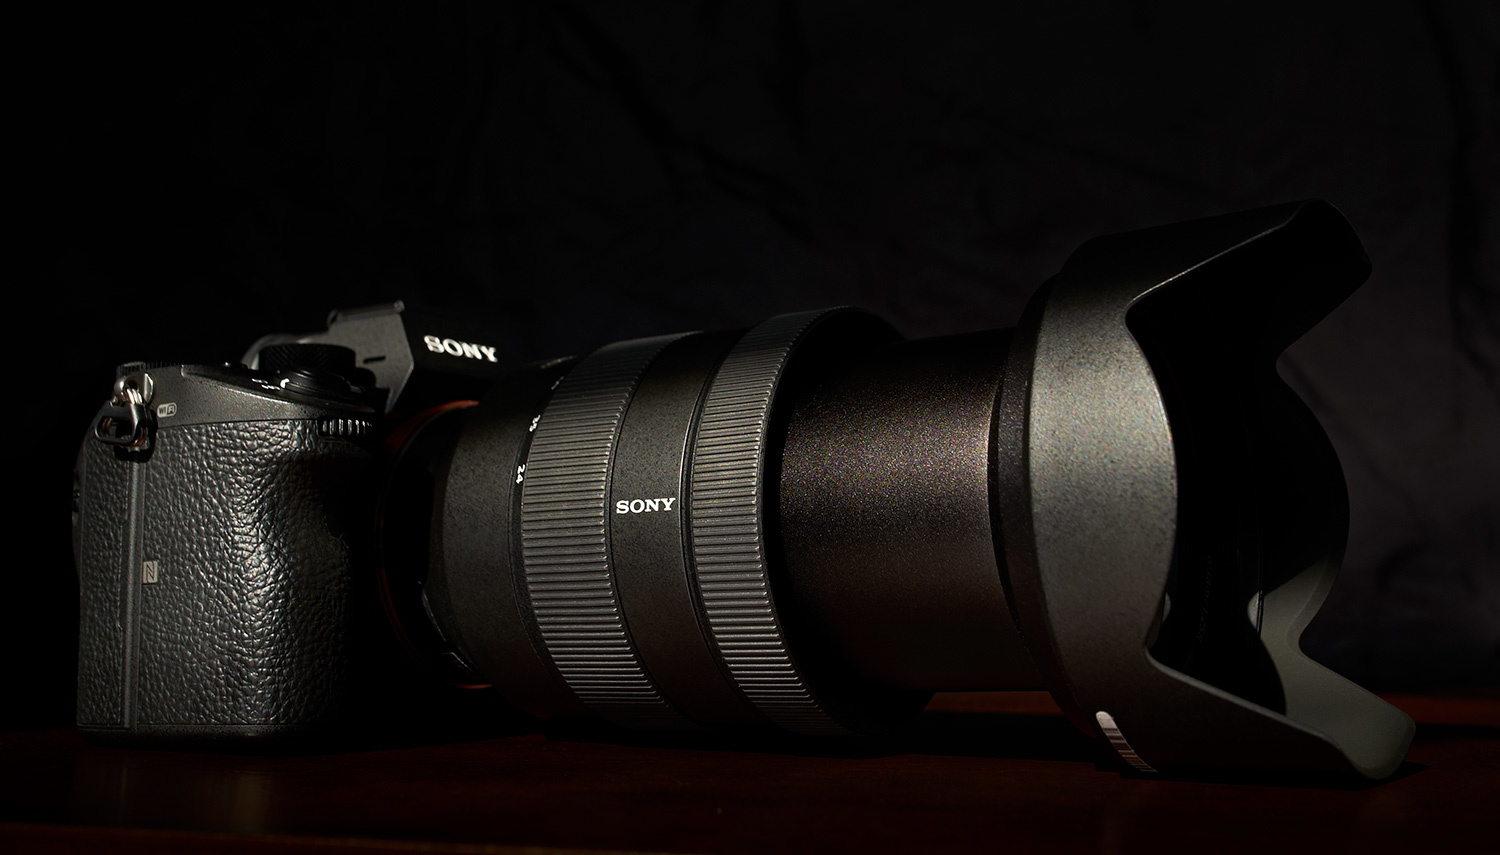 Sonys Best Lens Isnt A G Master Fstoppers Peak Design Kit Sony E Fe Mount 24 105mm Zoomed To